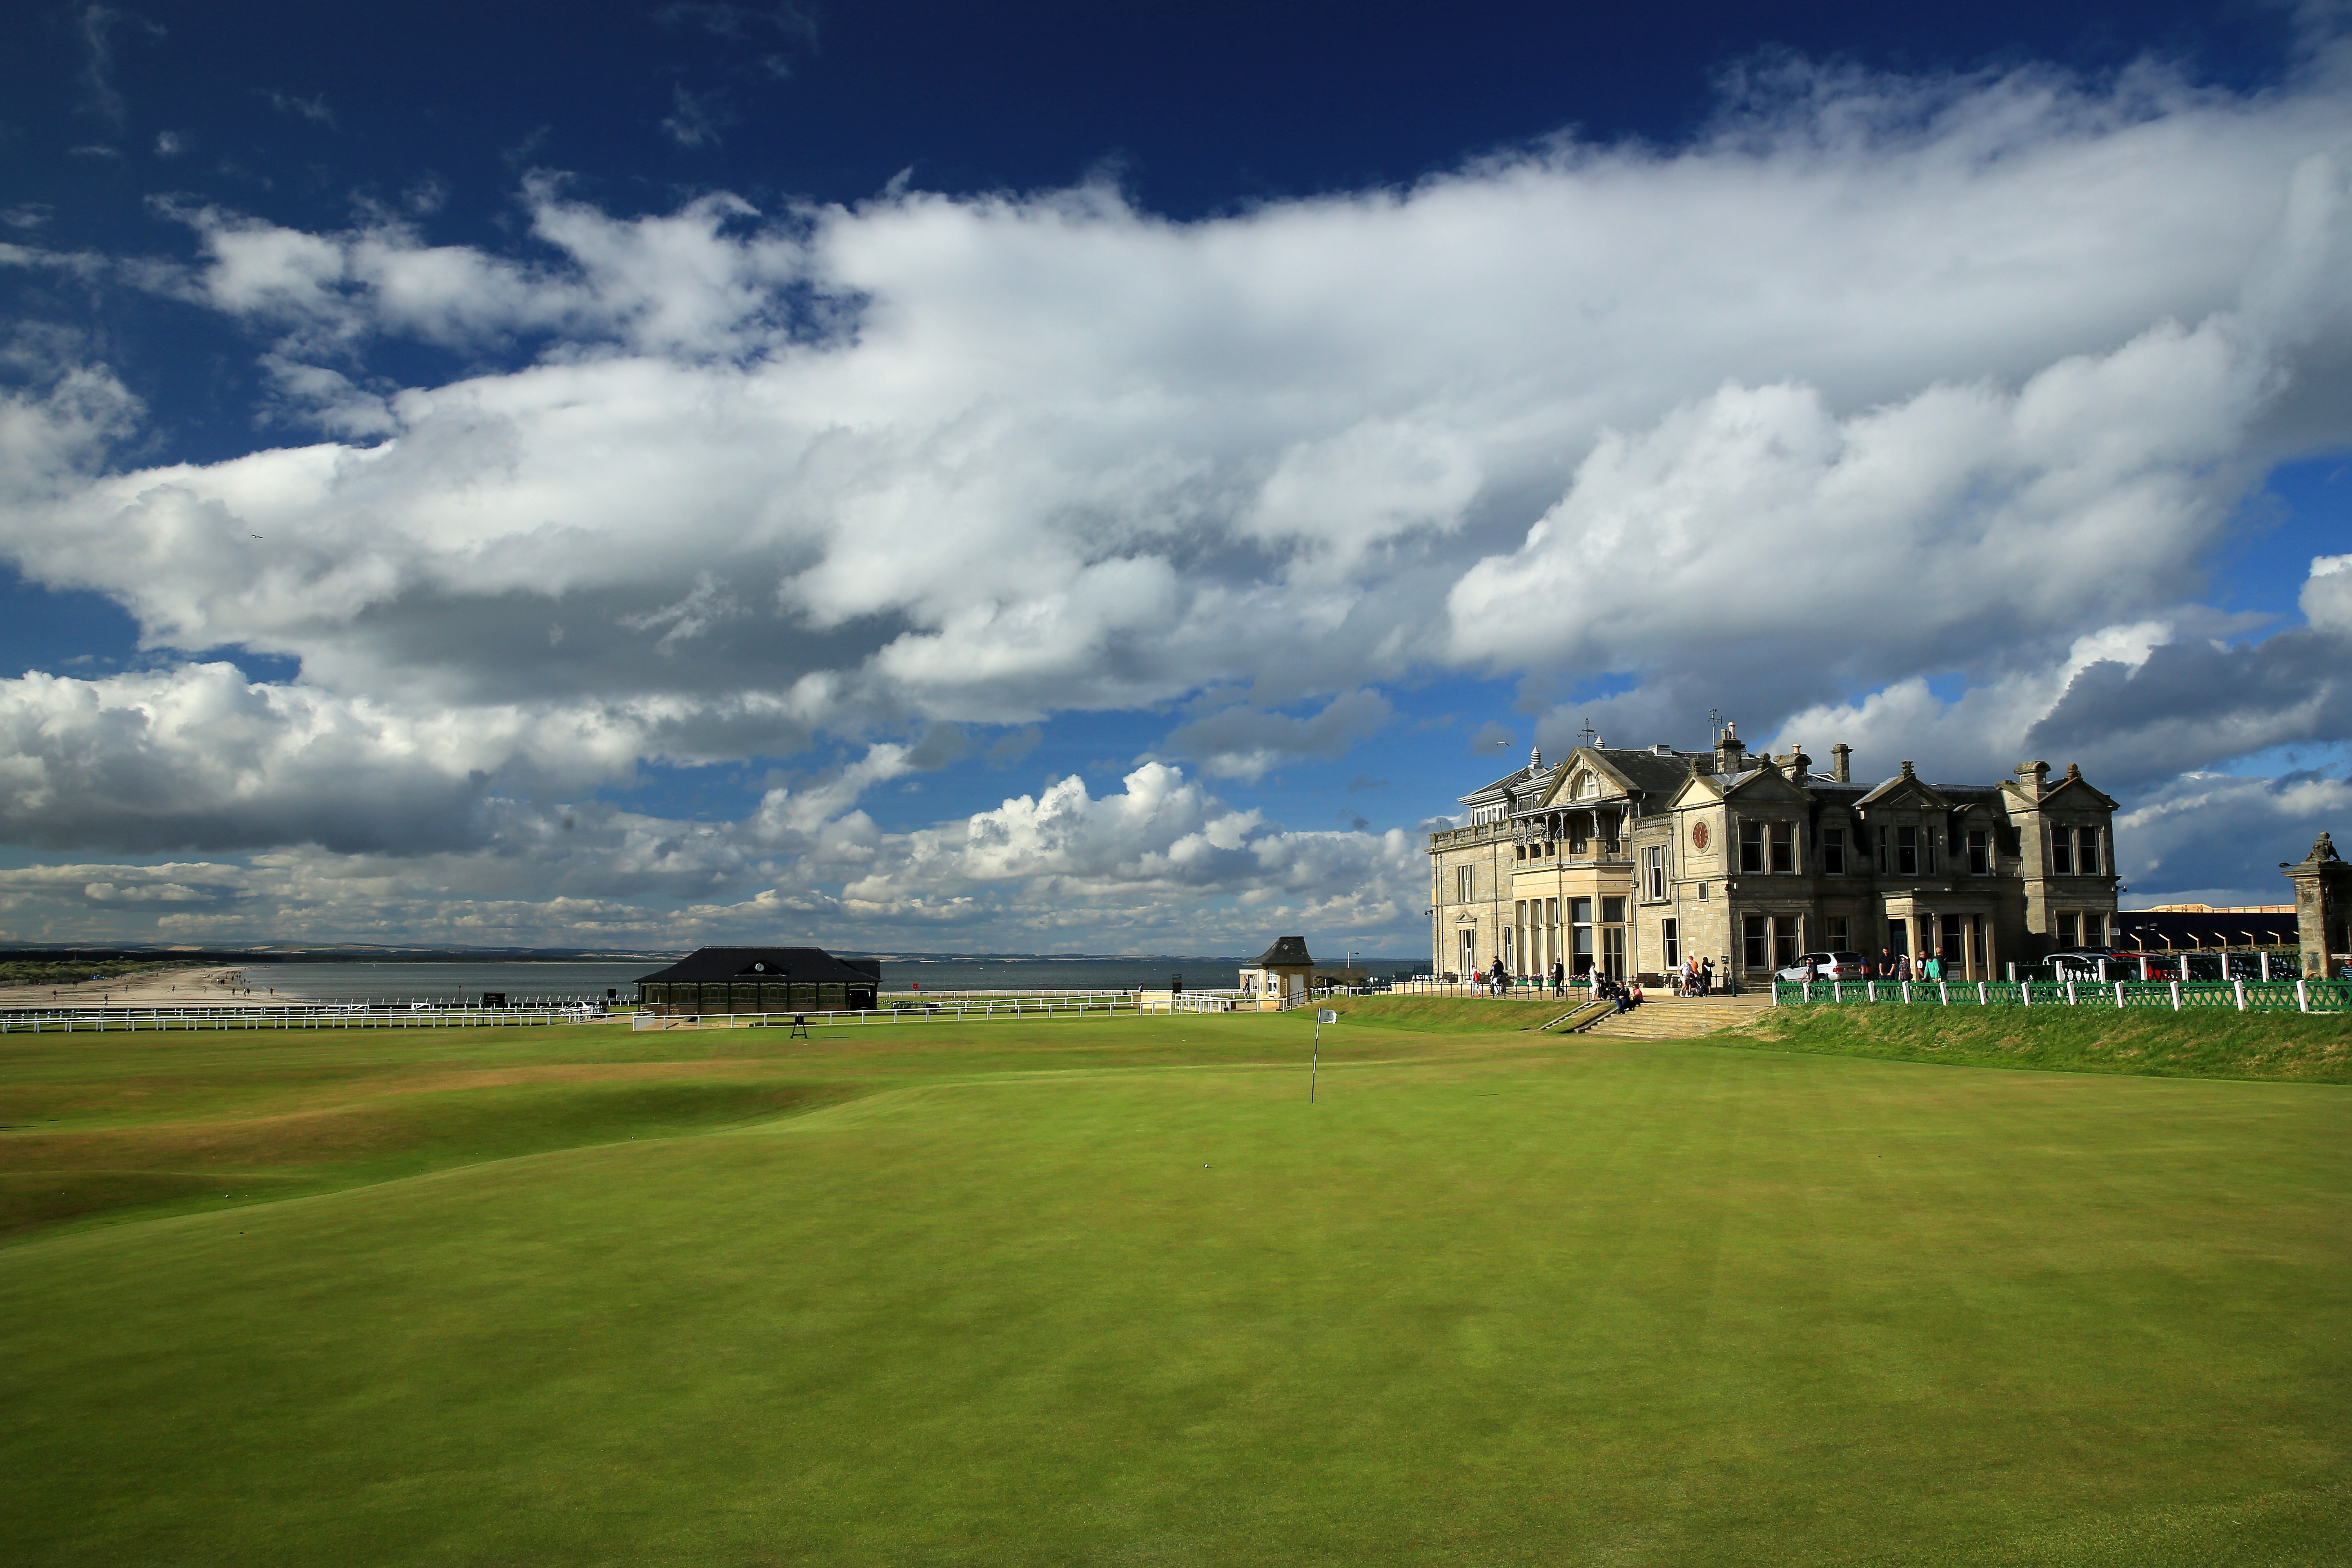 The clubhouse of the Royal and Ancient Golf Club of St Andrews, with the 18th green and the first tee on the Old Course at St Andrews venue for The Open Championship in 2015, on July 29, 2014 in St Andrews, Scotland